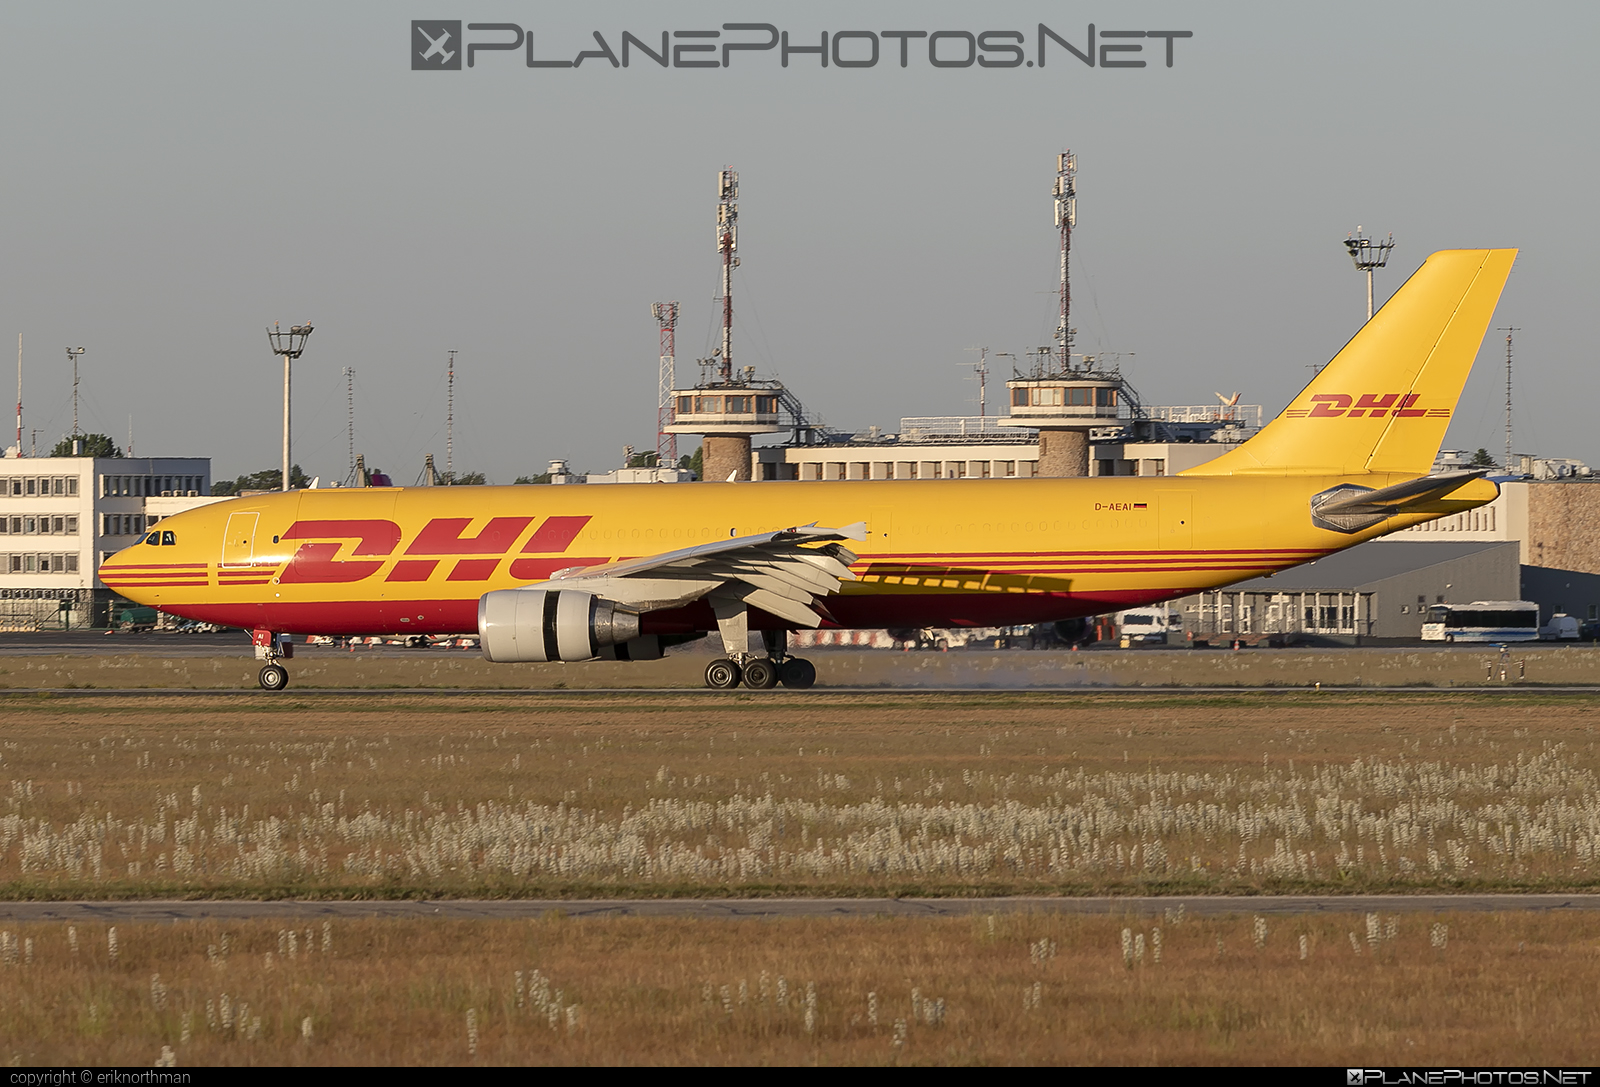 Airbus A300B4-622RF - D-AEAI operated by DHL (European Air Transport) #a300 #airbus